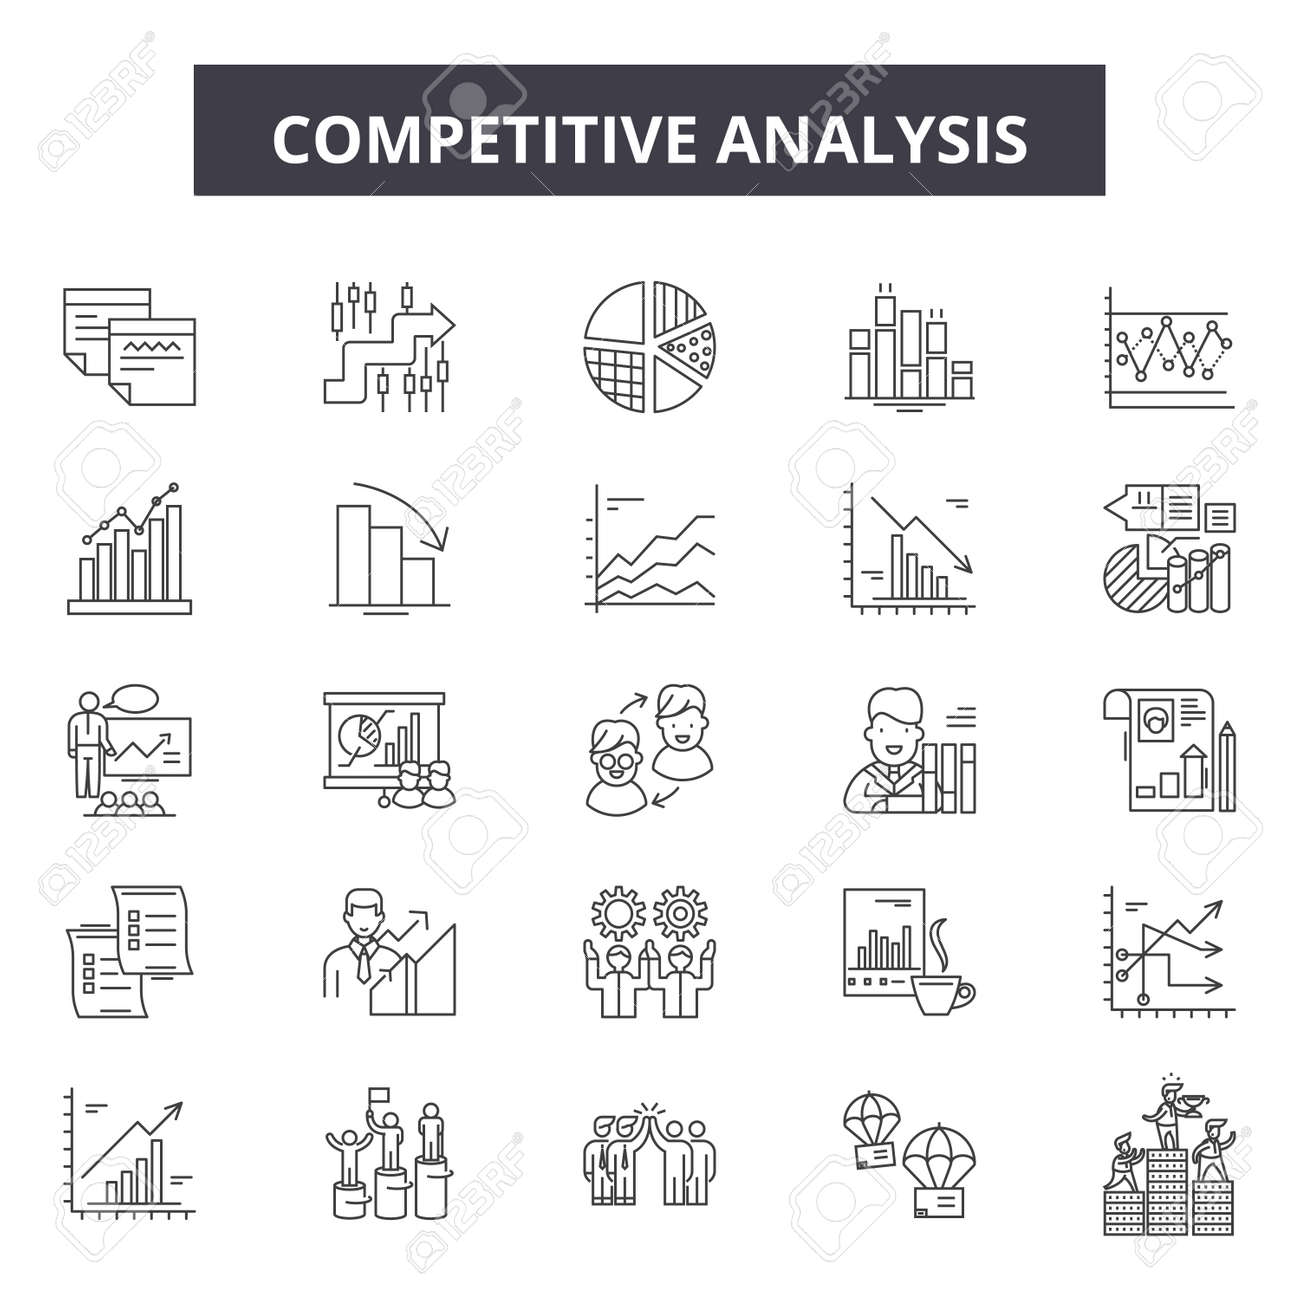 Competitive analysis line icons, signs set, vector. Competitive analysis outline concept illustration: analysis,strategy,business,solution,marketing,success,competition,management,target - 123581931